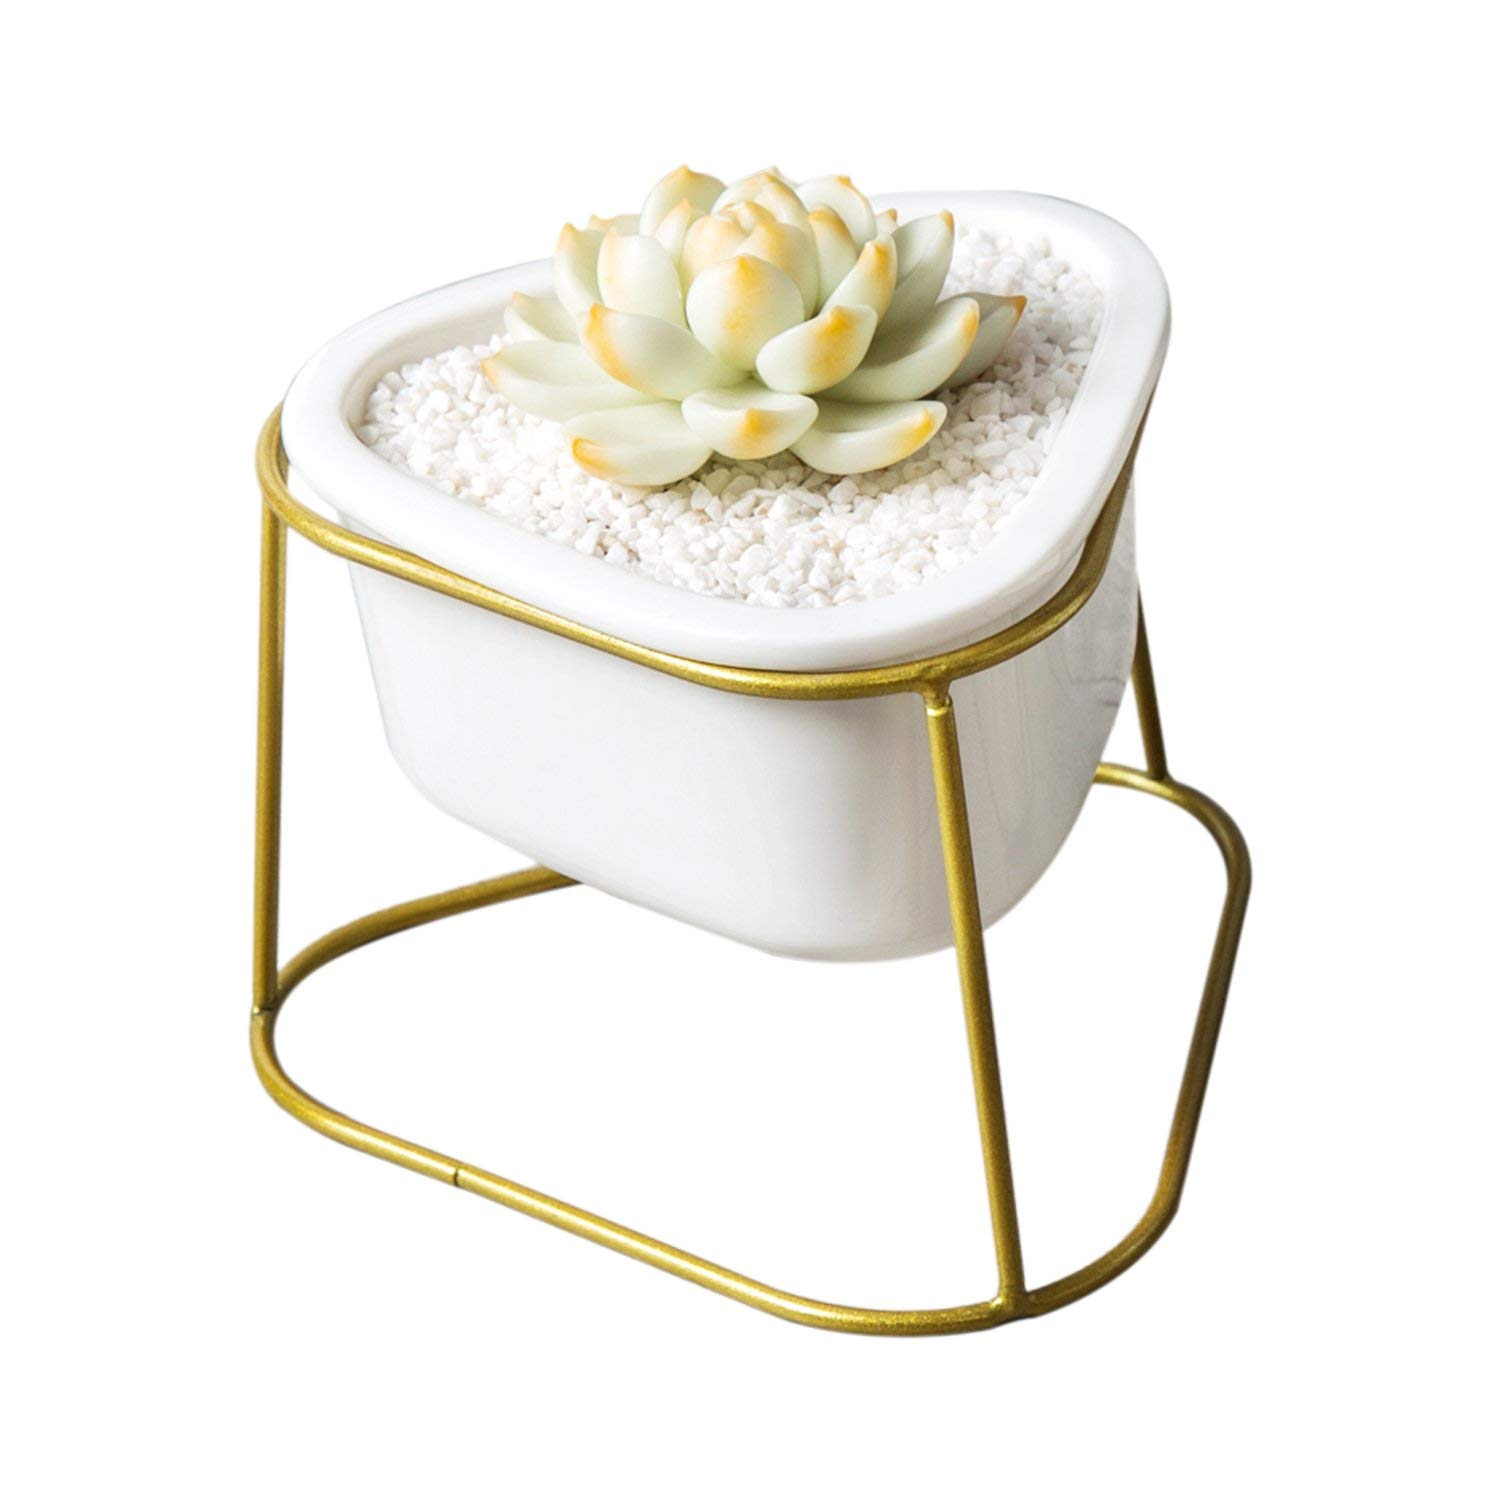 CUUCOR Small Modern White Ceramic Succulent Planter Pot with Metal Stand,Indoor Plant Holder for Succulent Plants/Mini Cactus/Artificial Flowers/Air Plant (White + Gold)